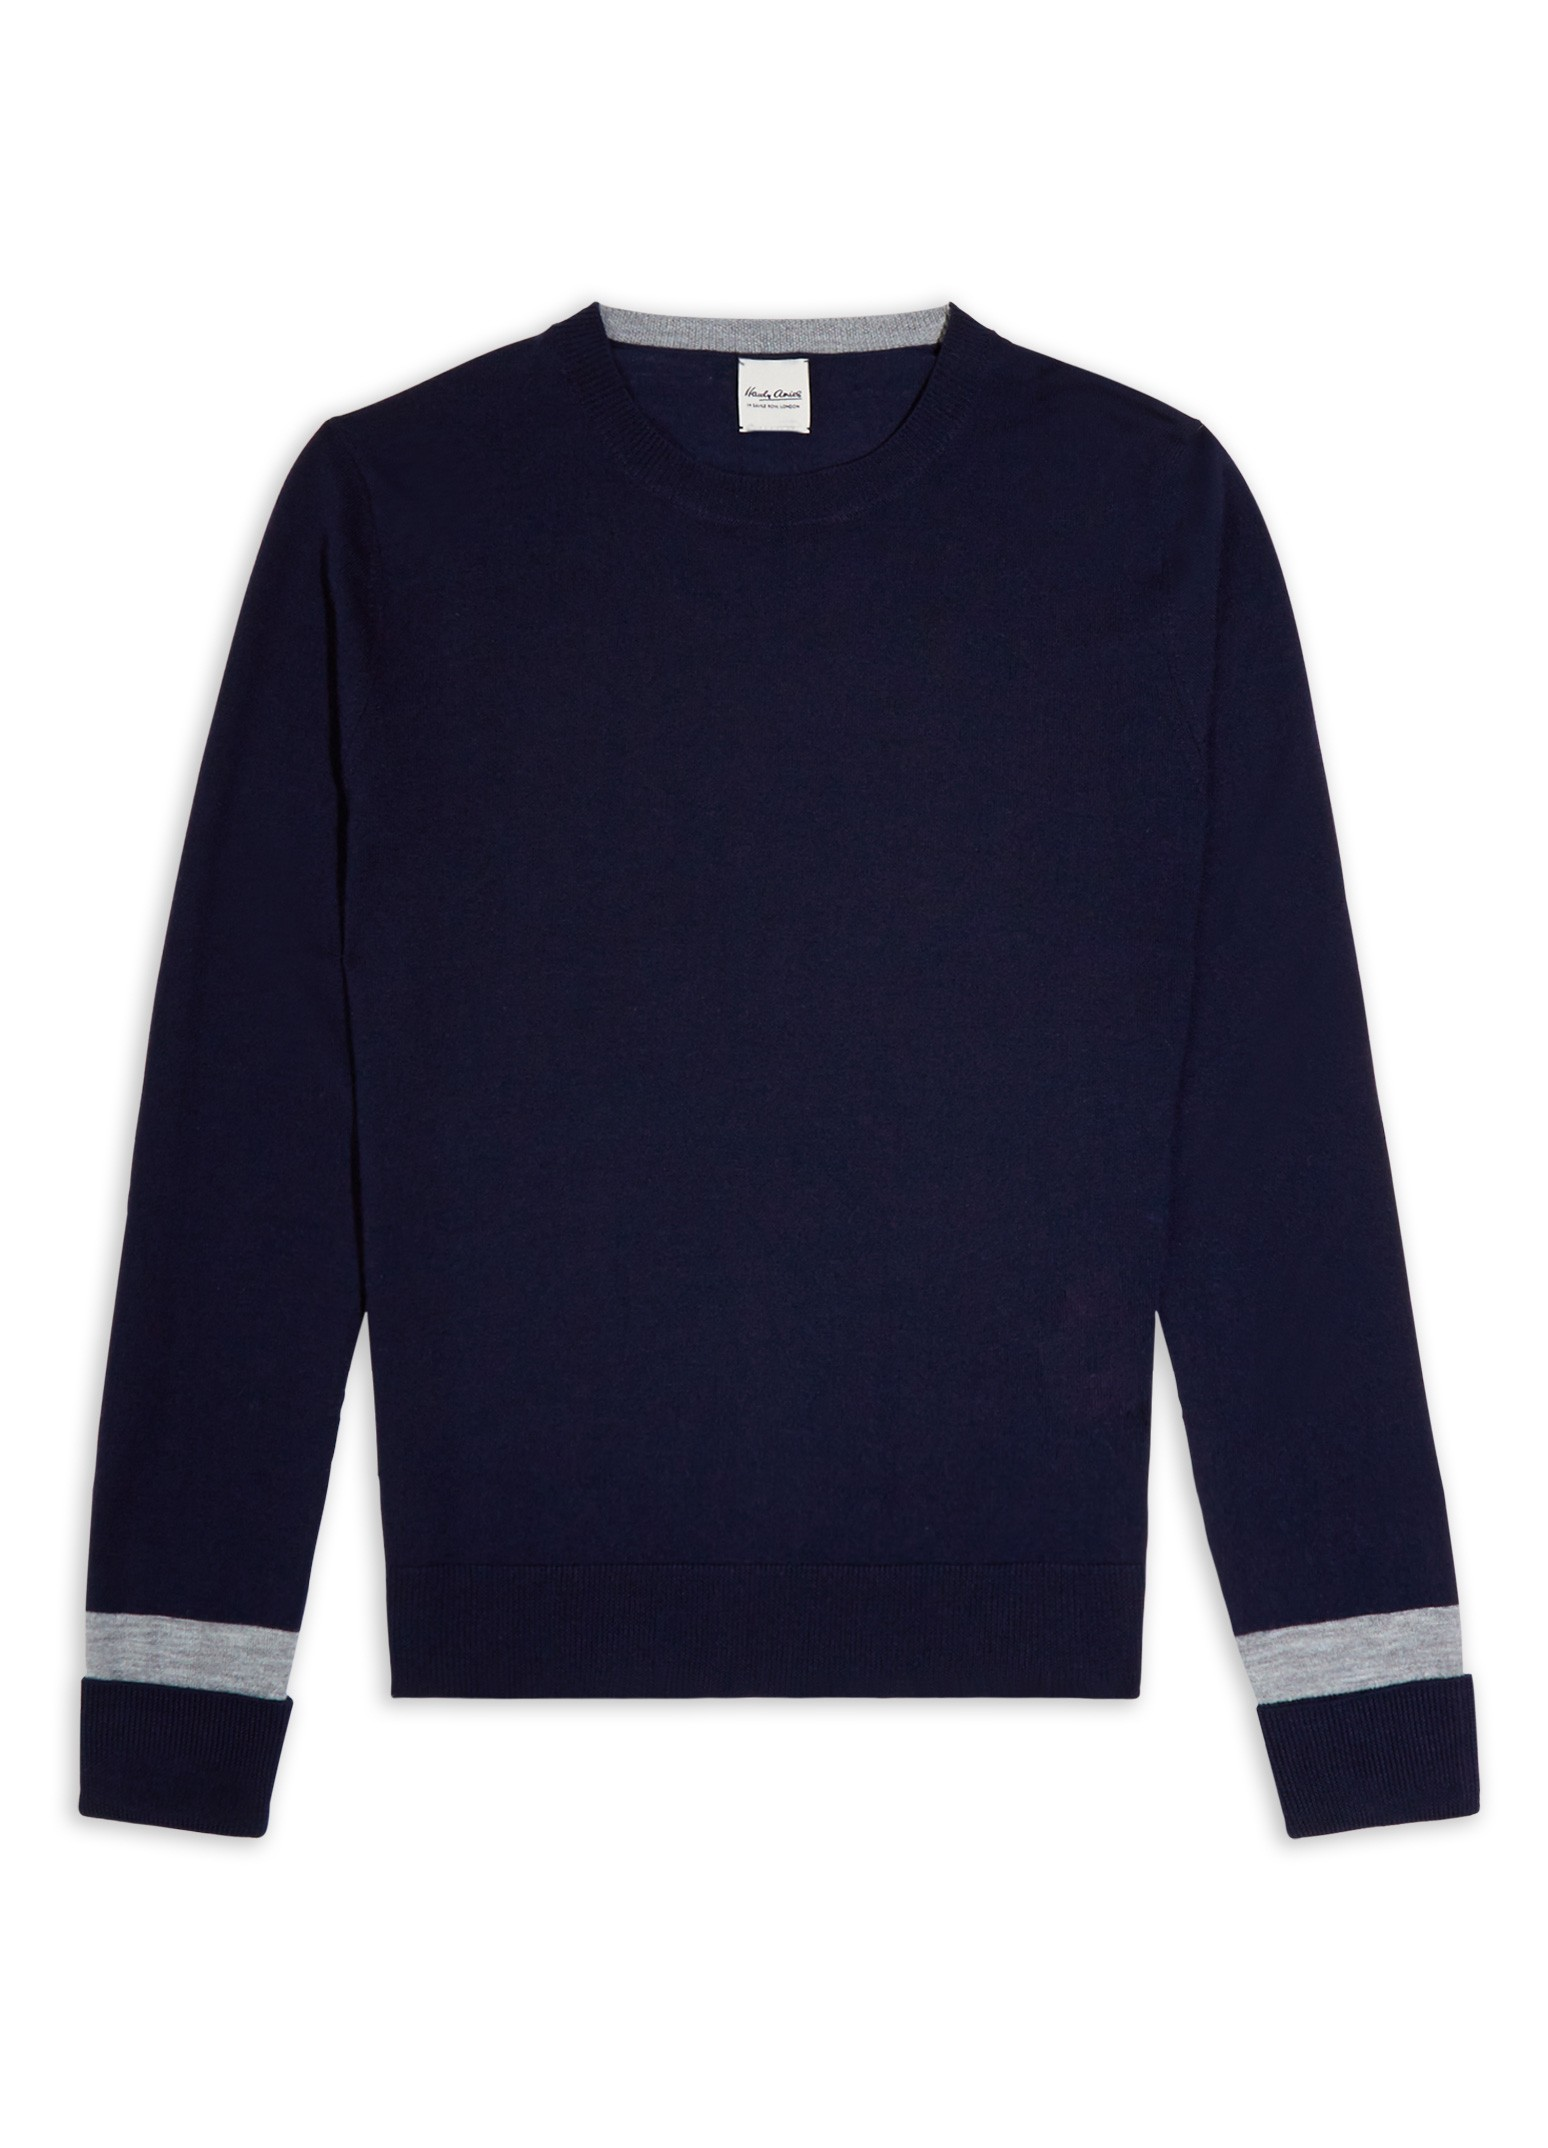 Hardy Amies NAVY KNIT GREY SLEEVE JUMPER Merino Wool